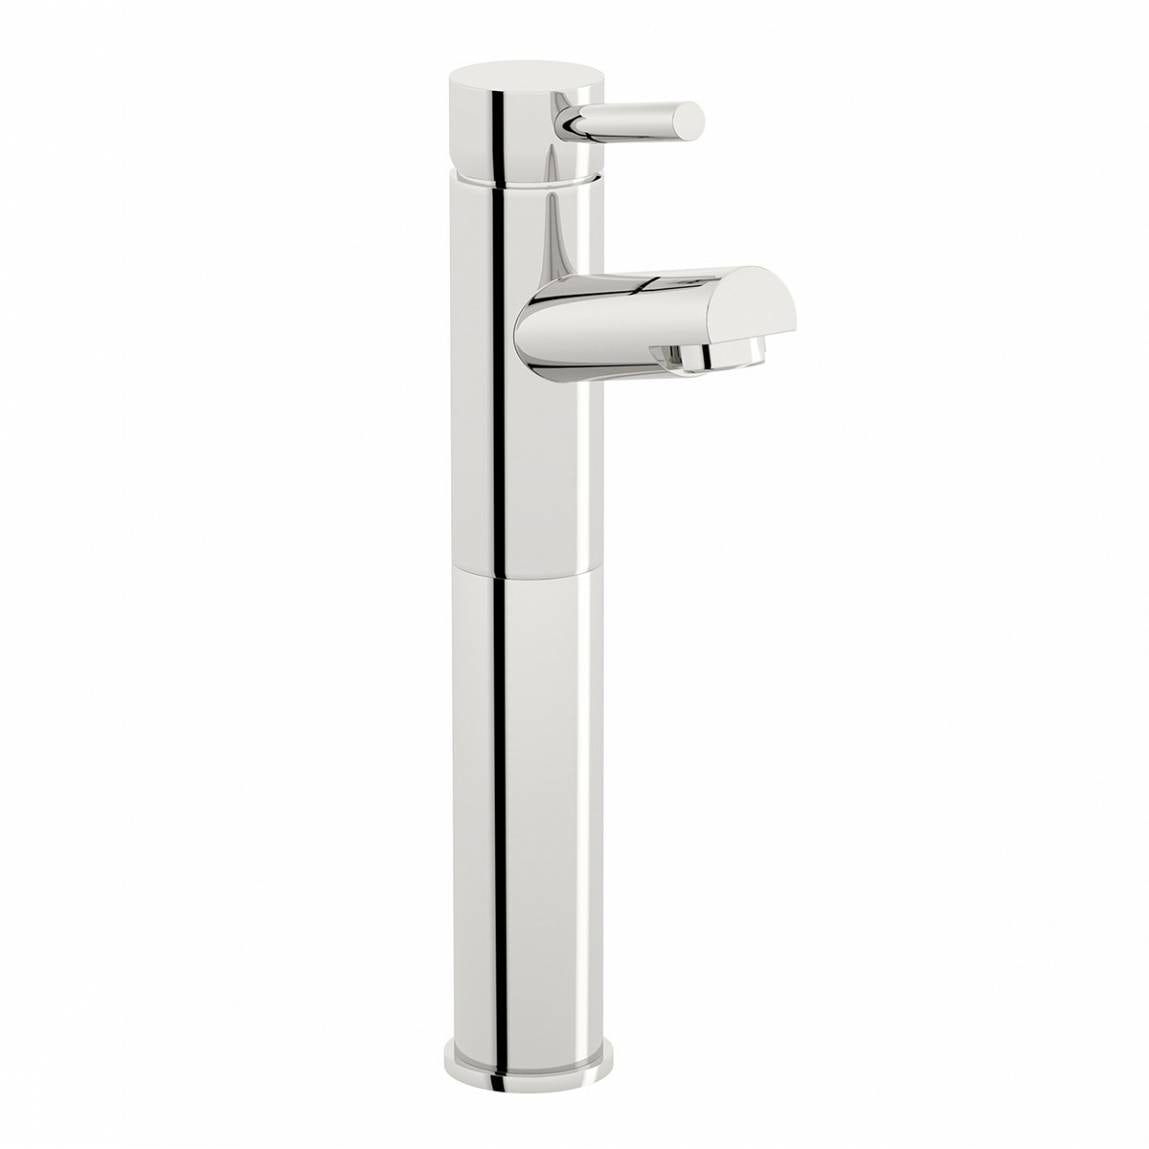 Orchard Wharfe high rise counter top basin mixer tap